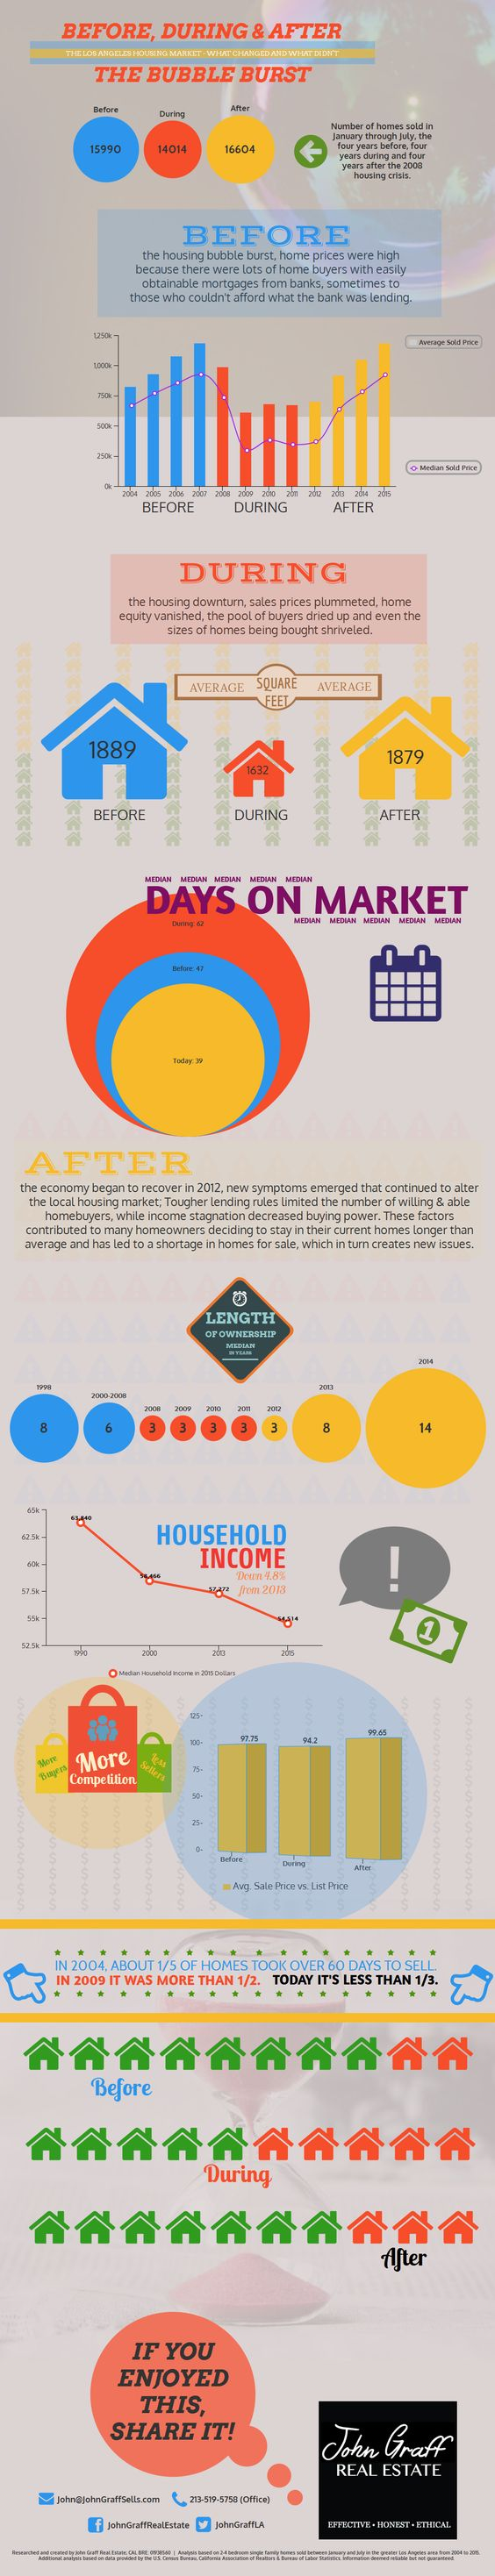 Before, During & After - Los Angeles and the 2008 Housing Crash. #RealEstate #Infographic